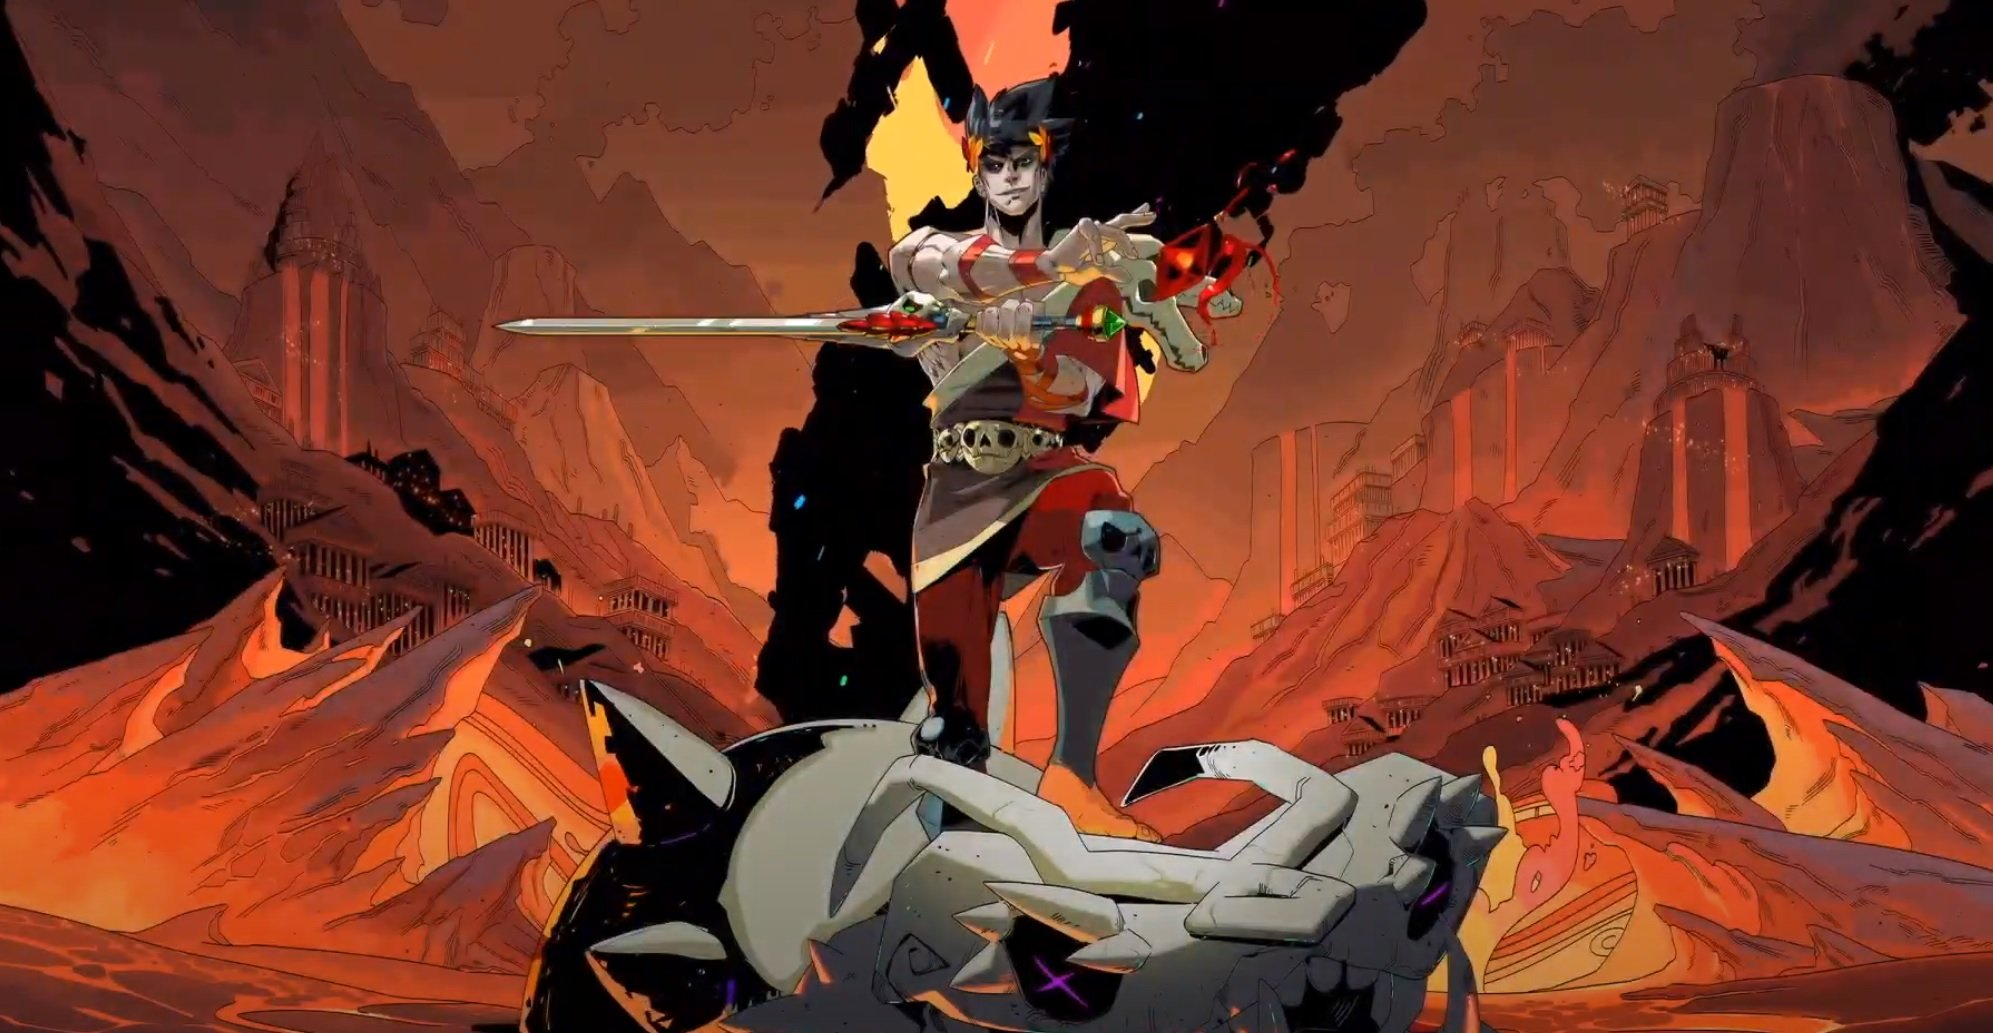 Supergiant Games' Hades is coming to Switch, will offer cross-save with PC version screenshot